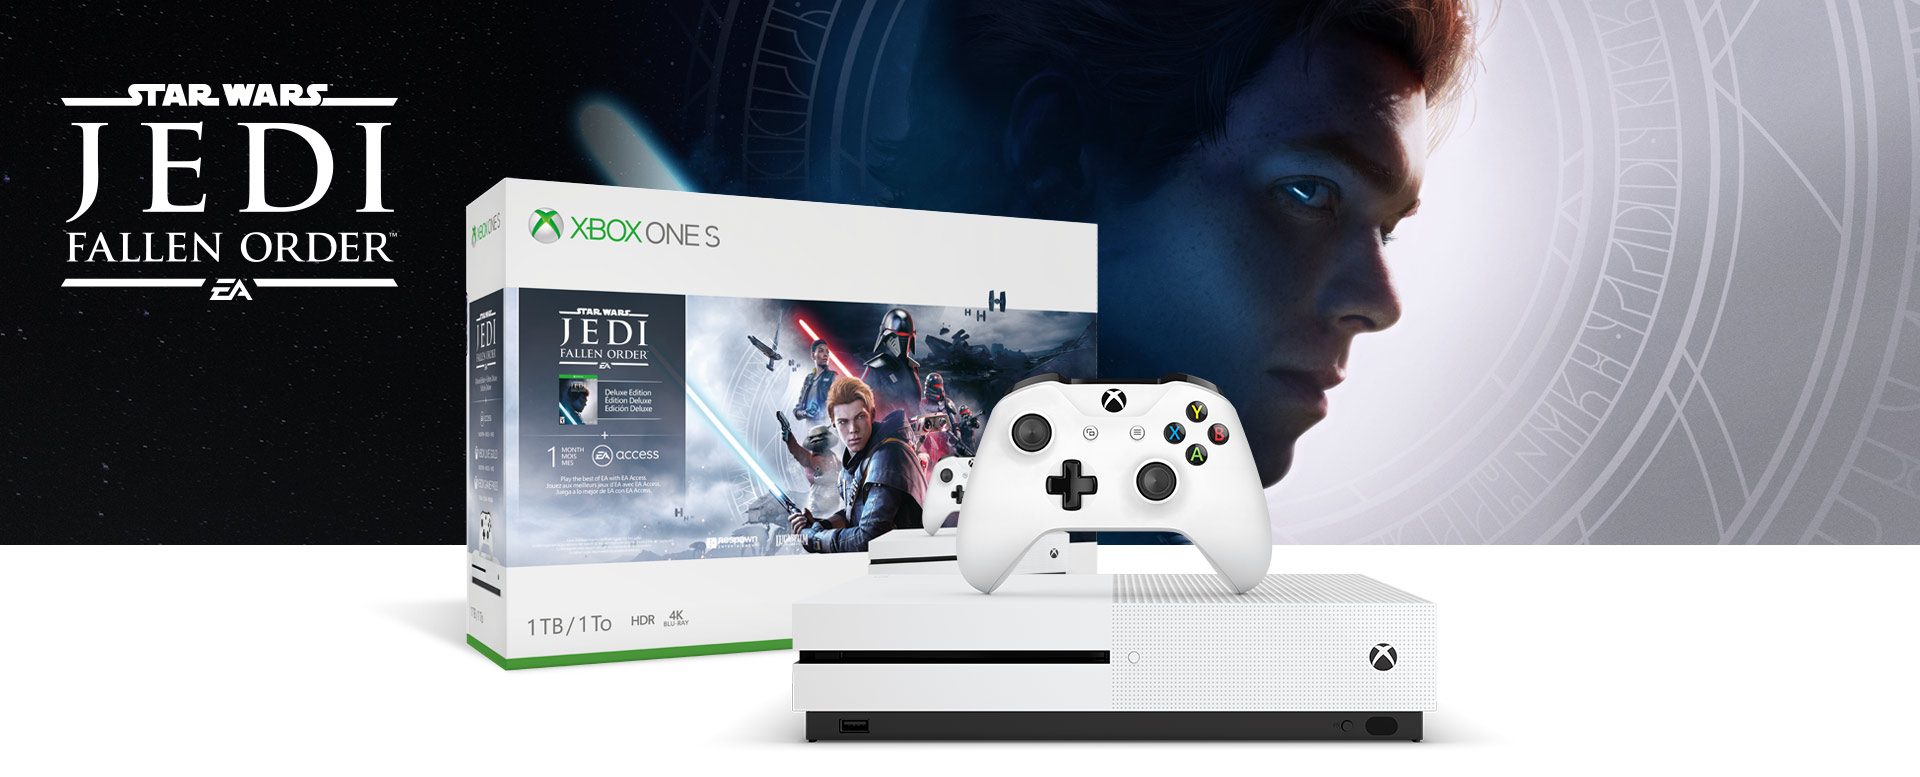 Xbox One S console in front of a hardware bundle box featuring Star Wars Jedi: Fallen Order logo